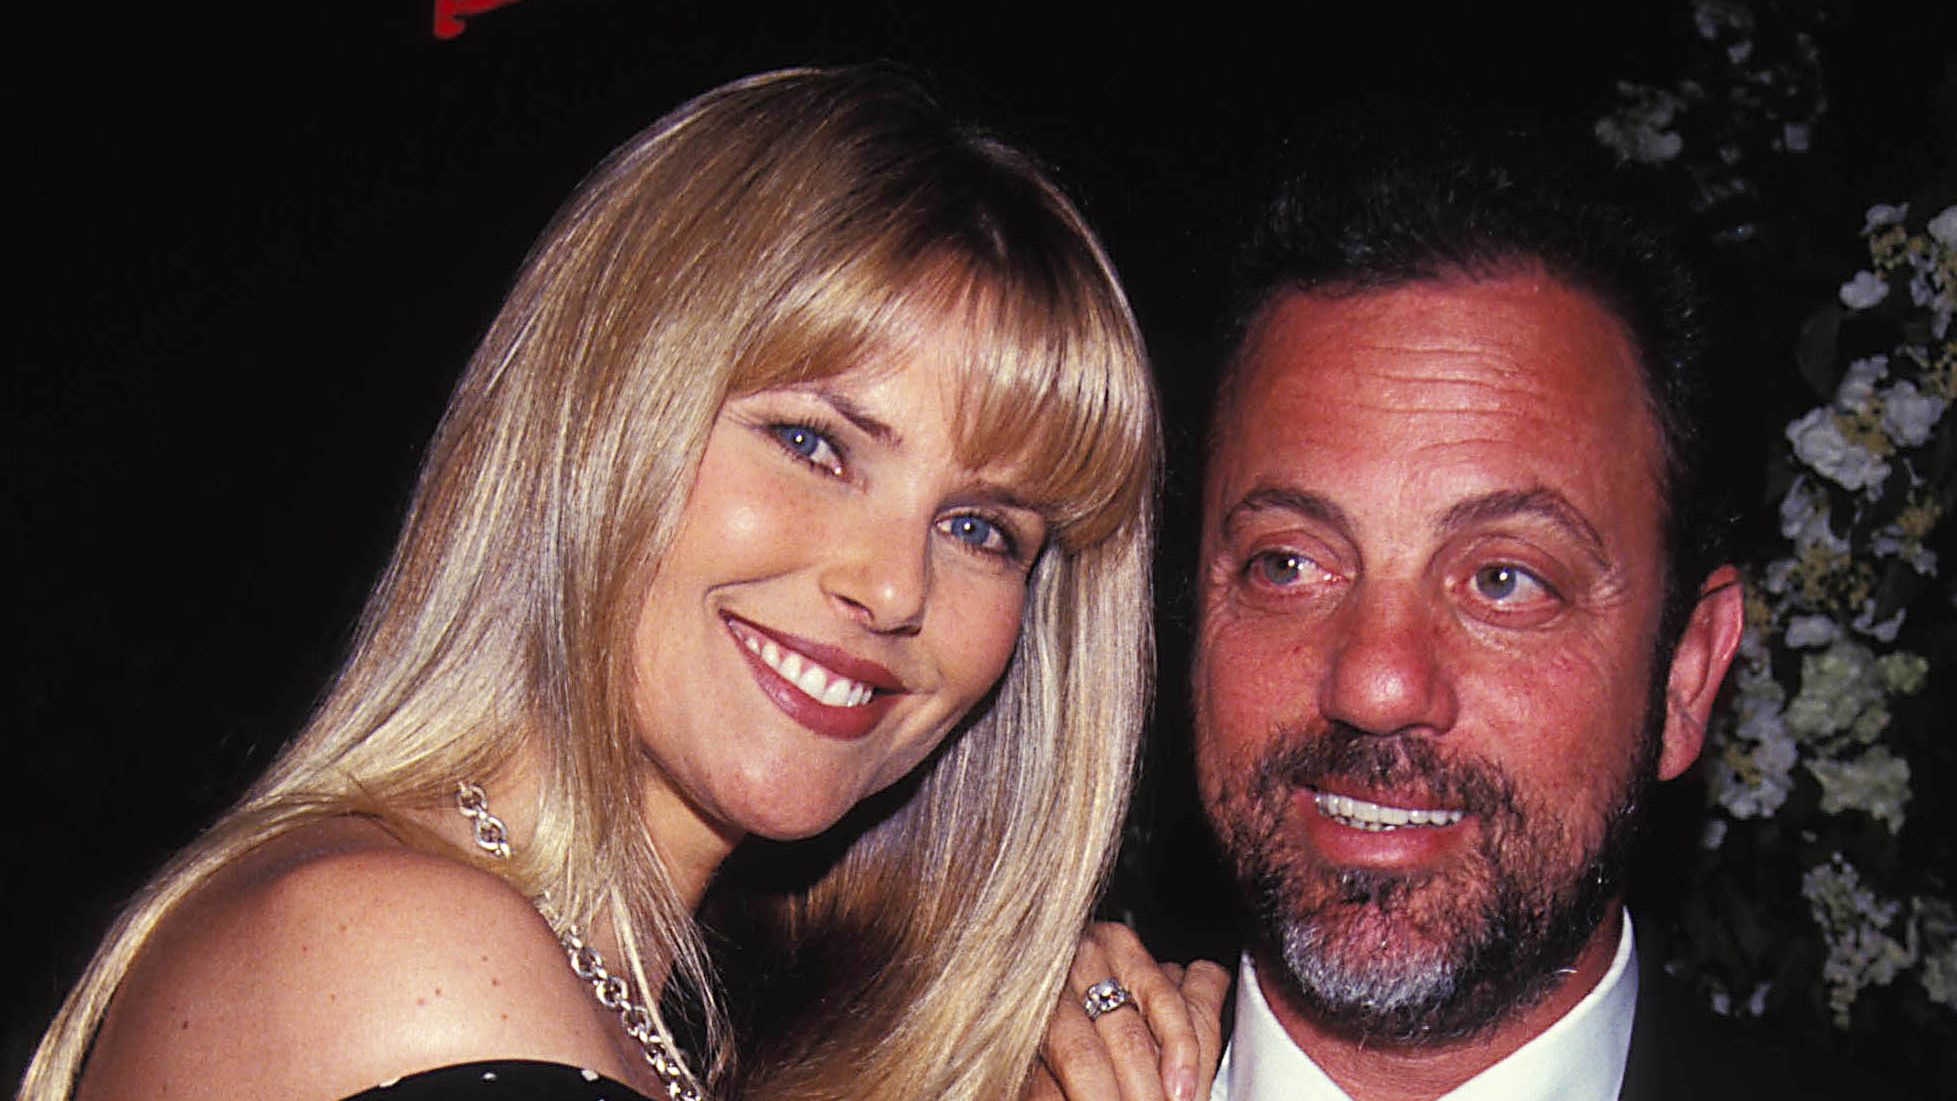 Christie Brinkley Reveals Ex-Husband Billy Joel Is 'Very Excited' to See Her on 'Dancing With the Stars'